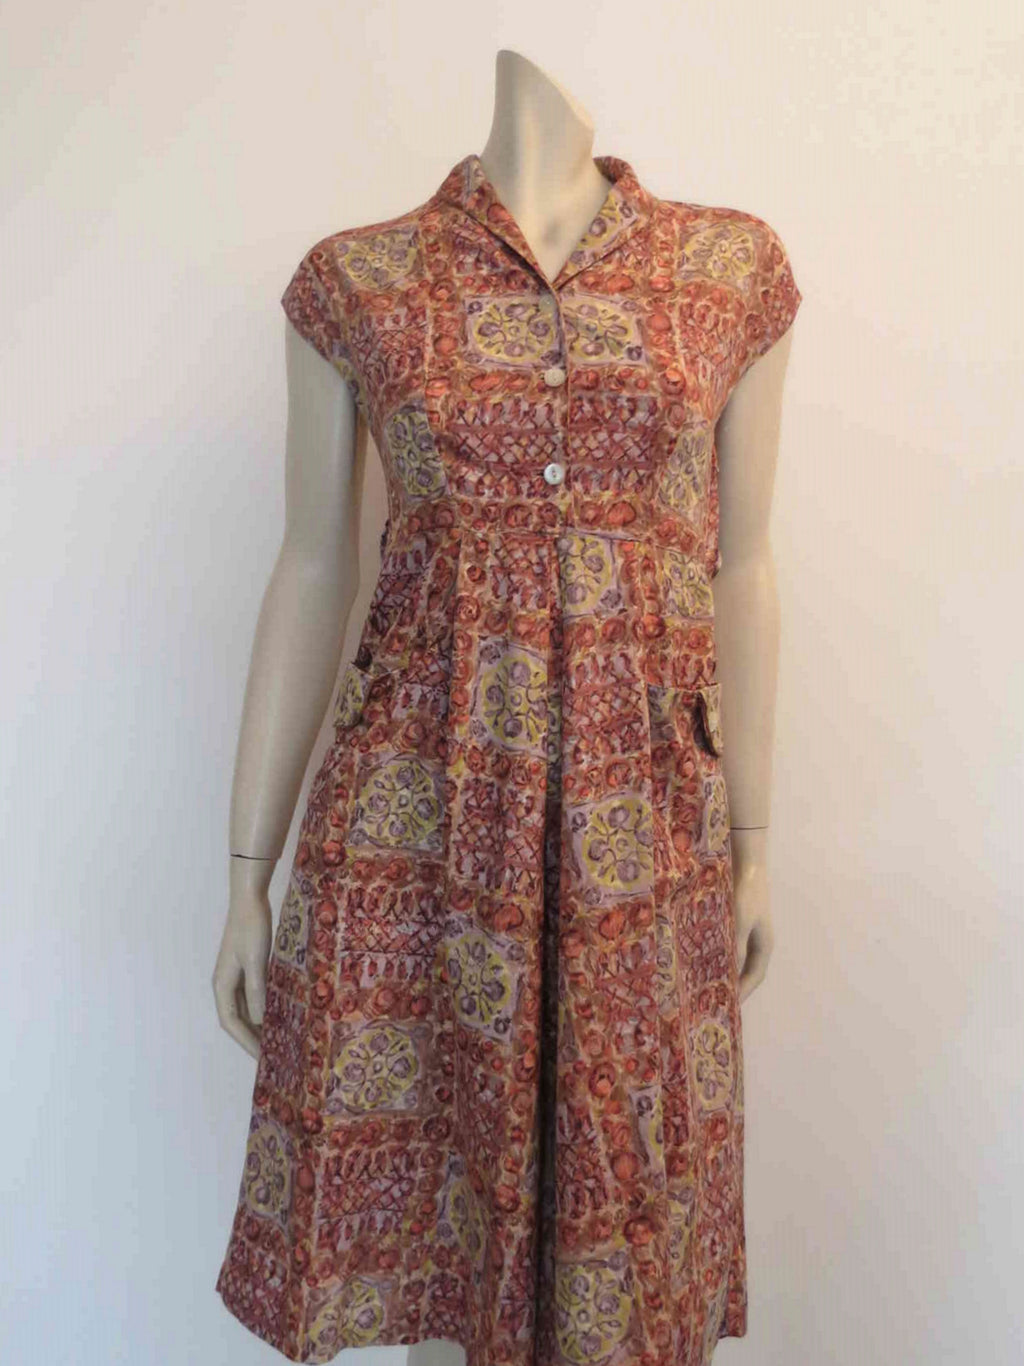 1950s vintage floral cotton dress with pockets